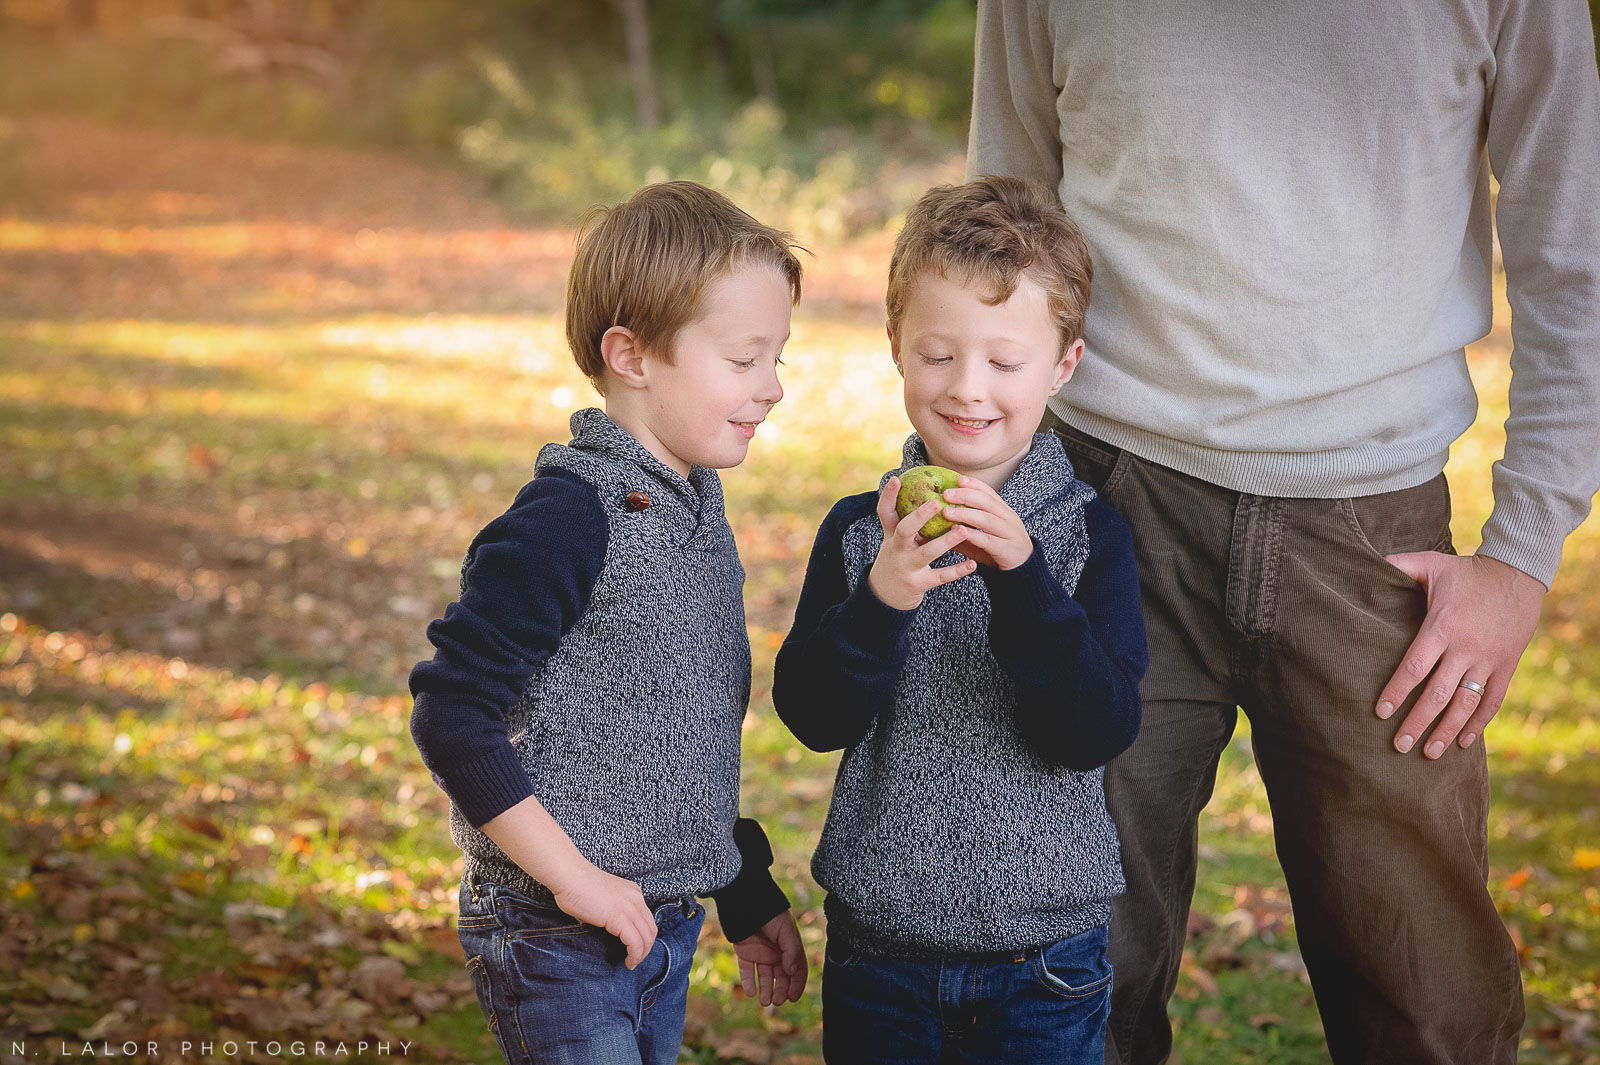 nlalor-photography-2014-styled-family-life-new-canaan-nature-center-fall-5.jpg